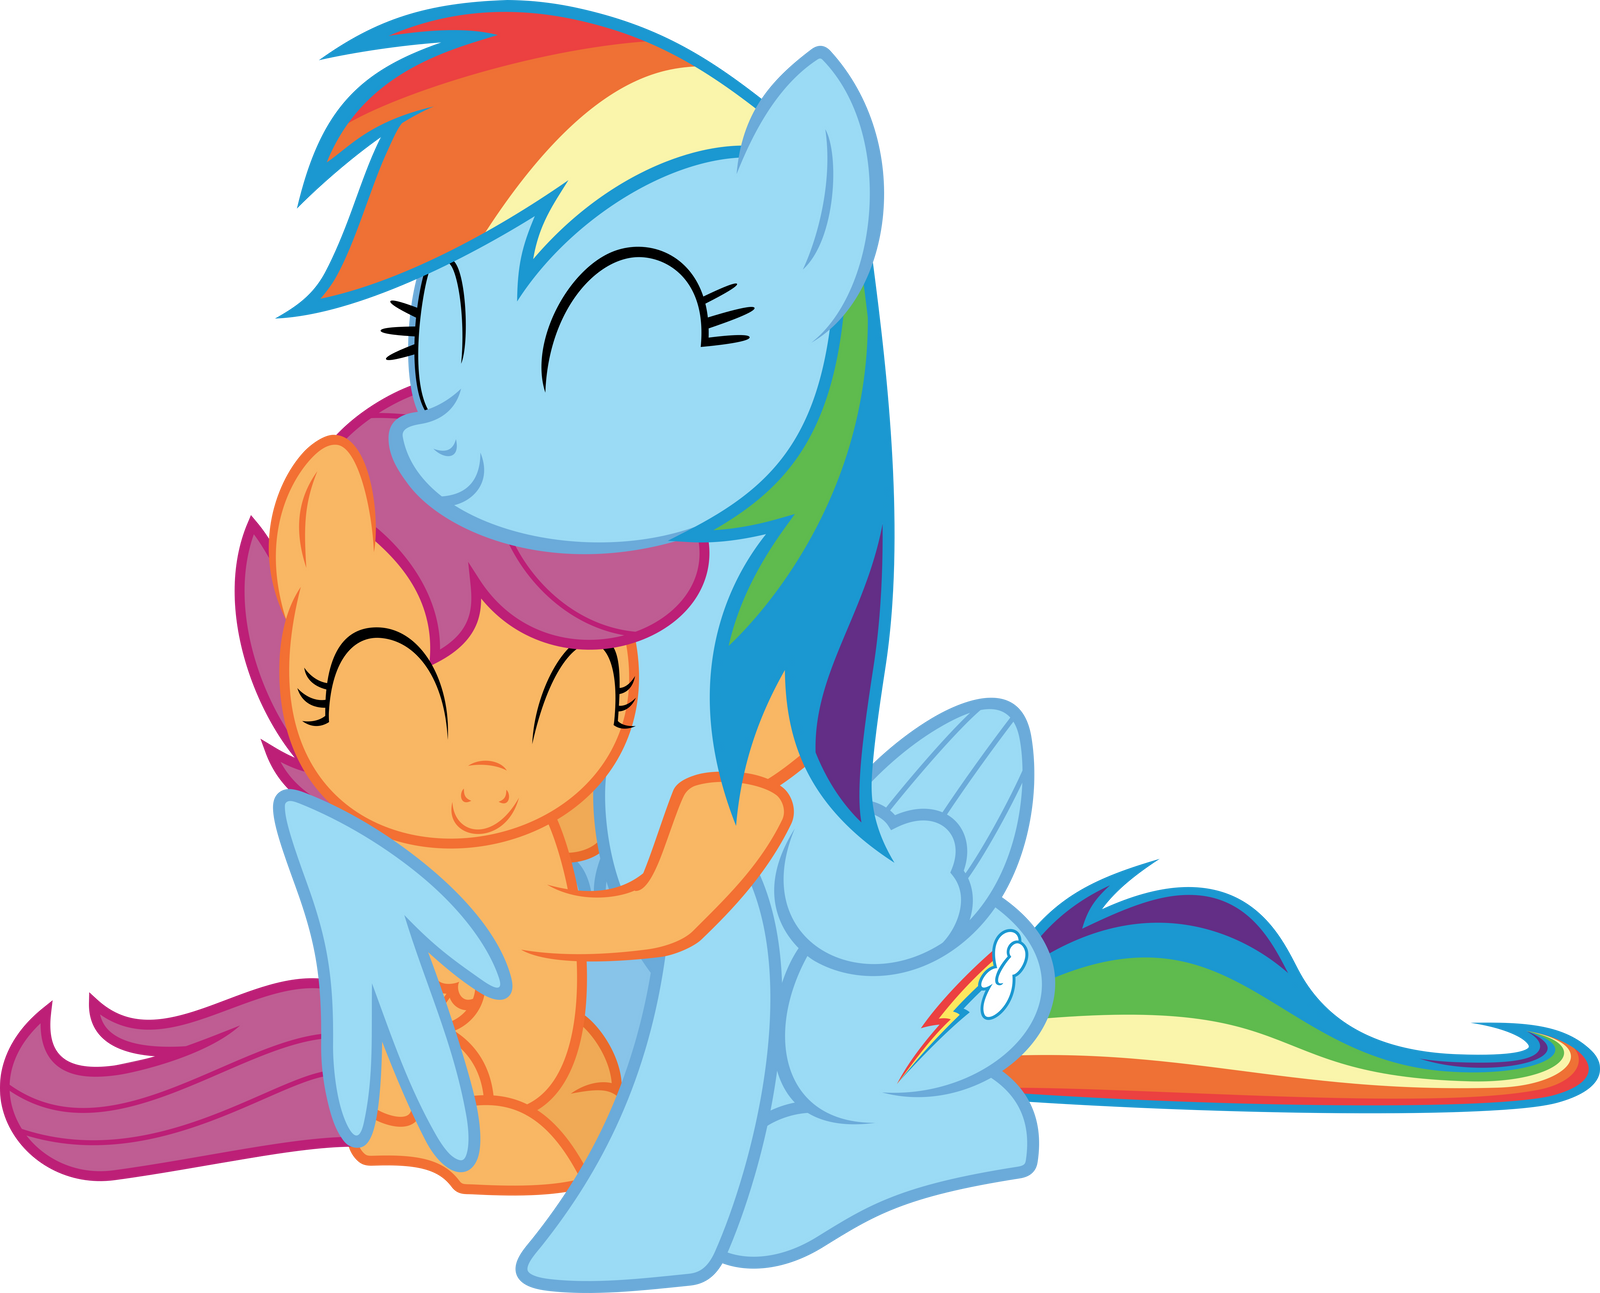 Rainbow Dash Scootaloo Hugging By Timelordomega On Deviantart Rainbow dash's main tic is constantly being in the air, even when she's doing nothing but hovering in place. rainbow dash scootaloo hugging by